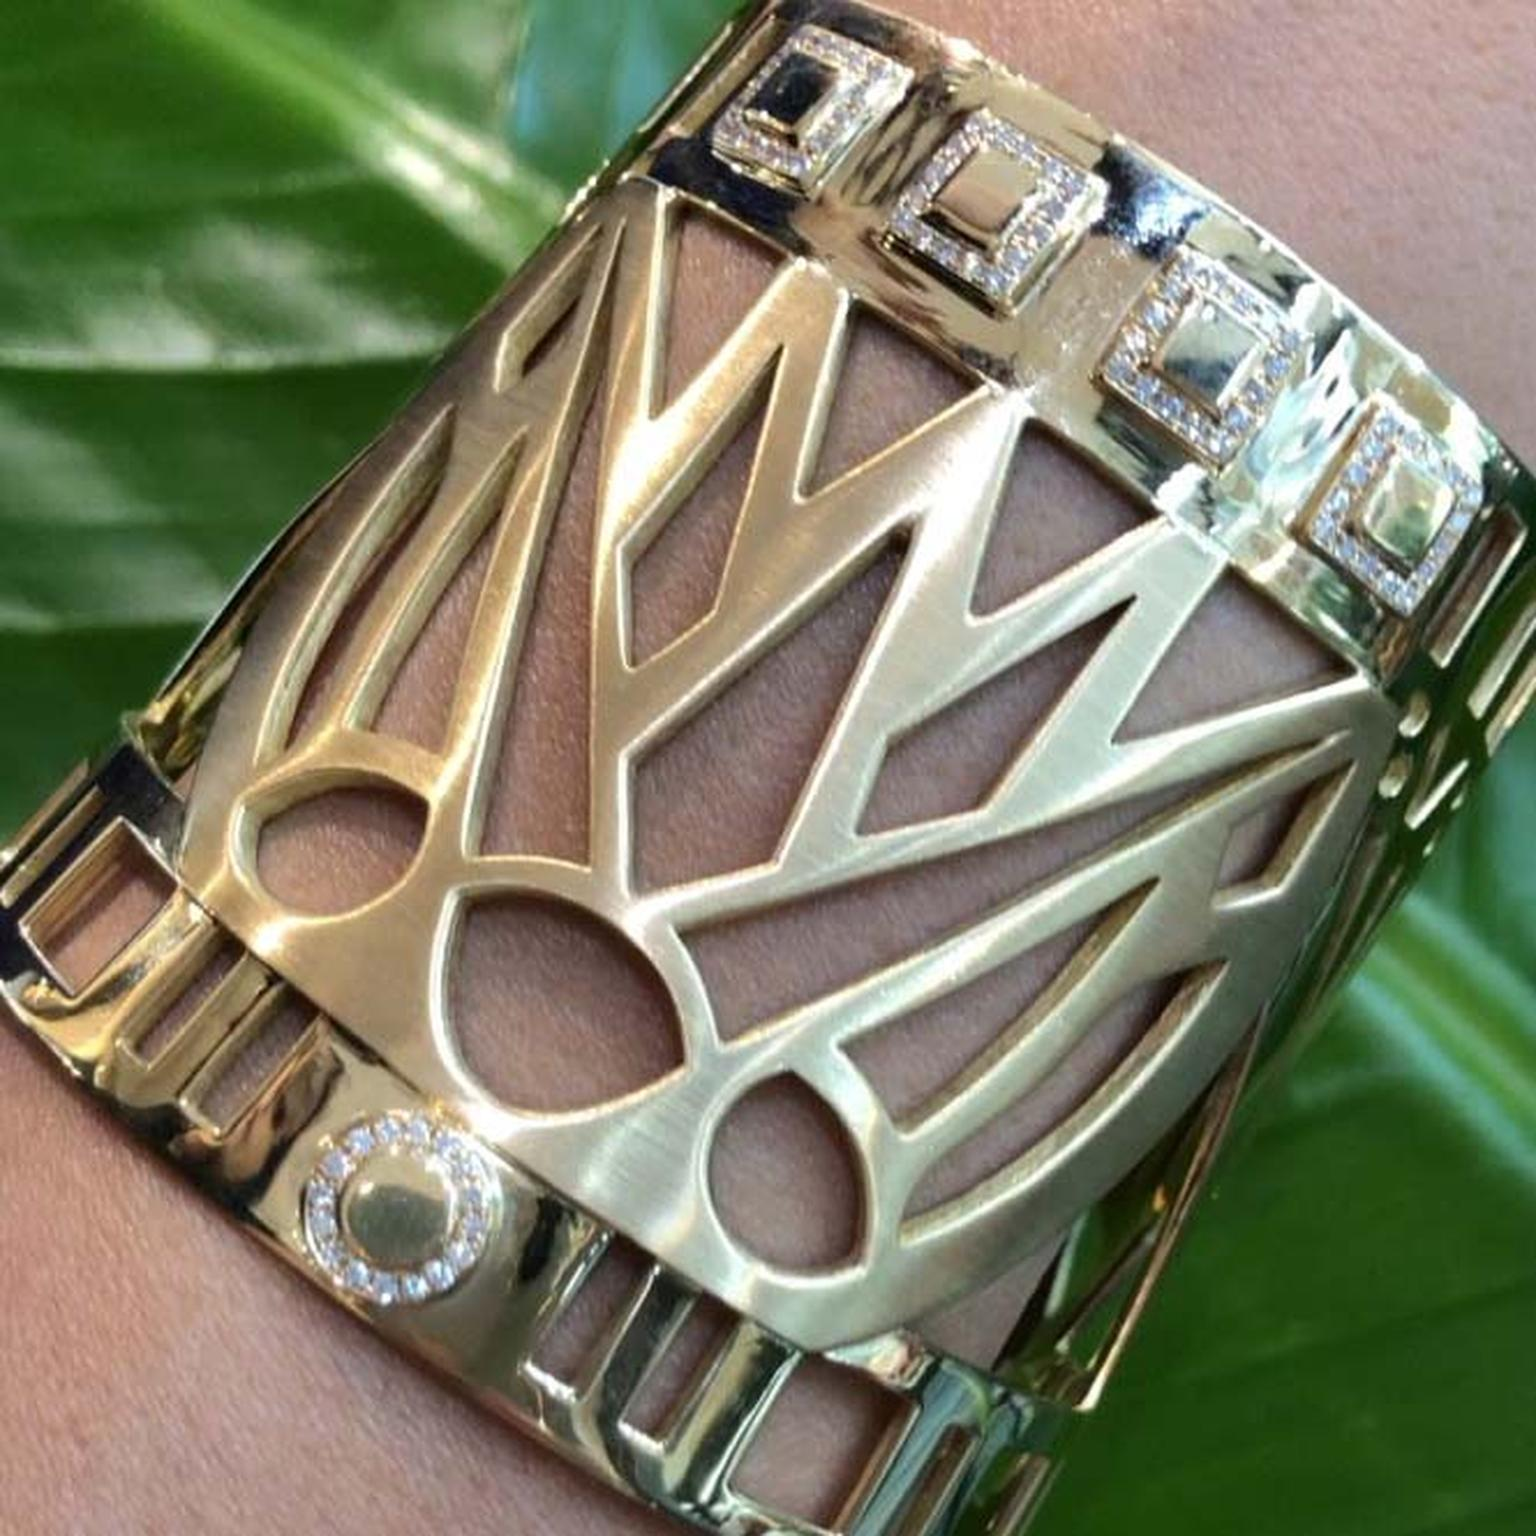 Lotus bangle from Azza Fahmy